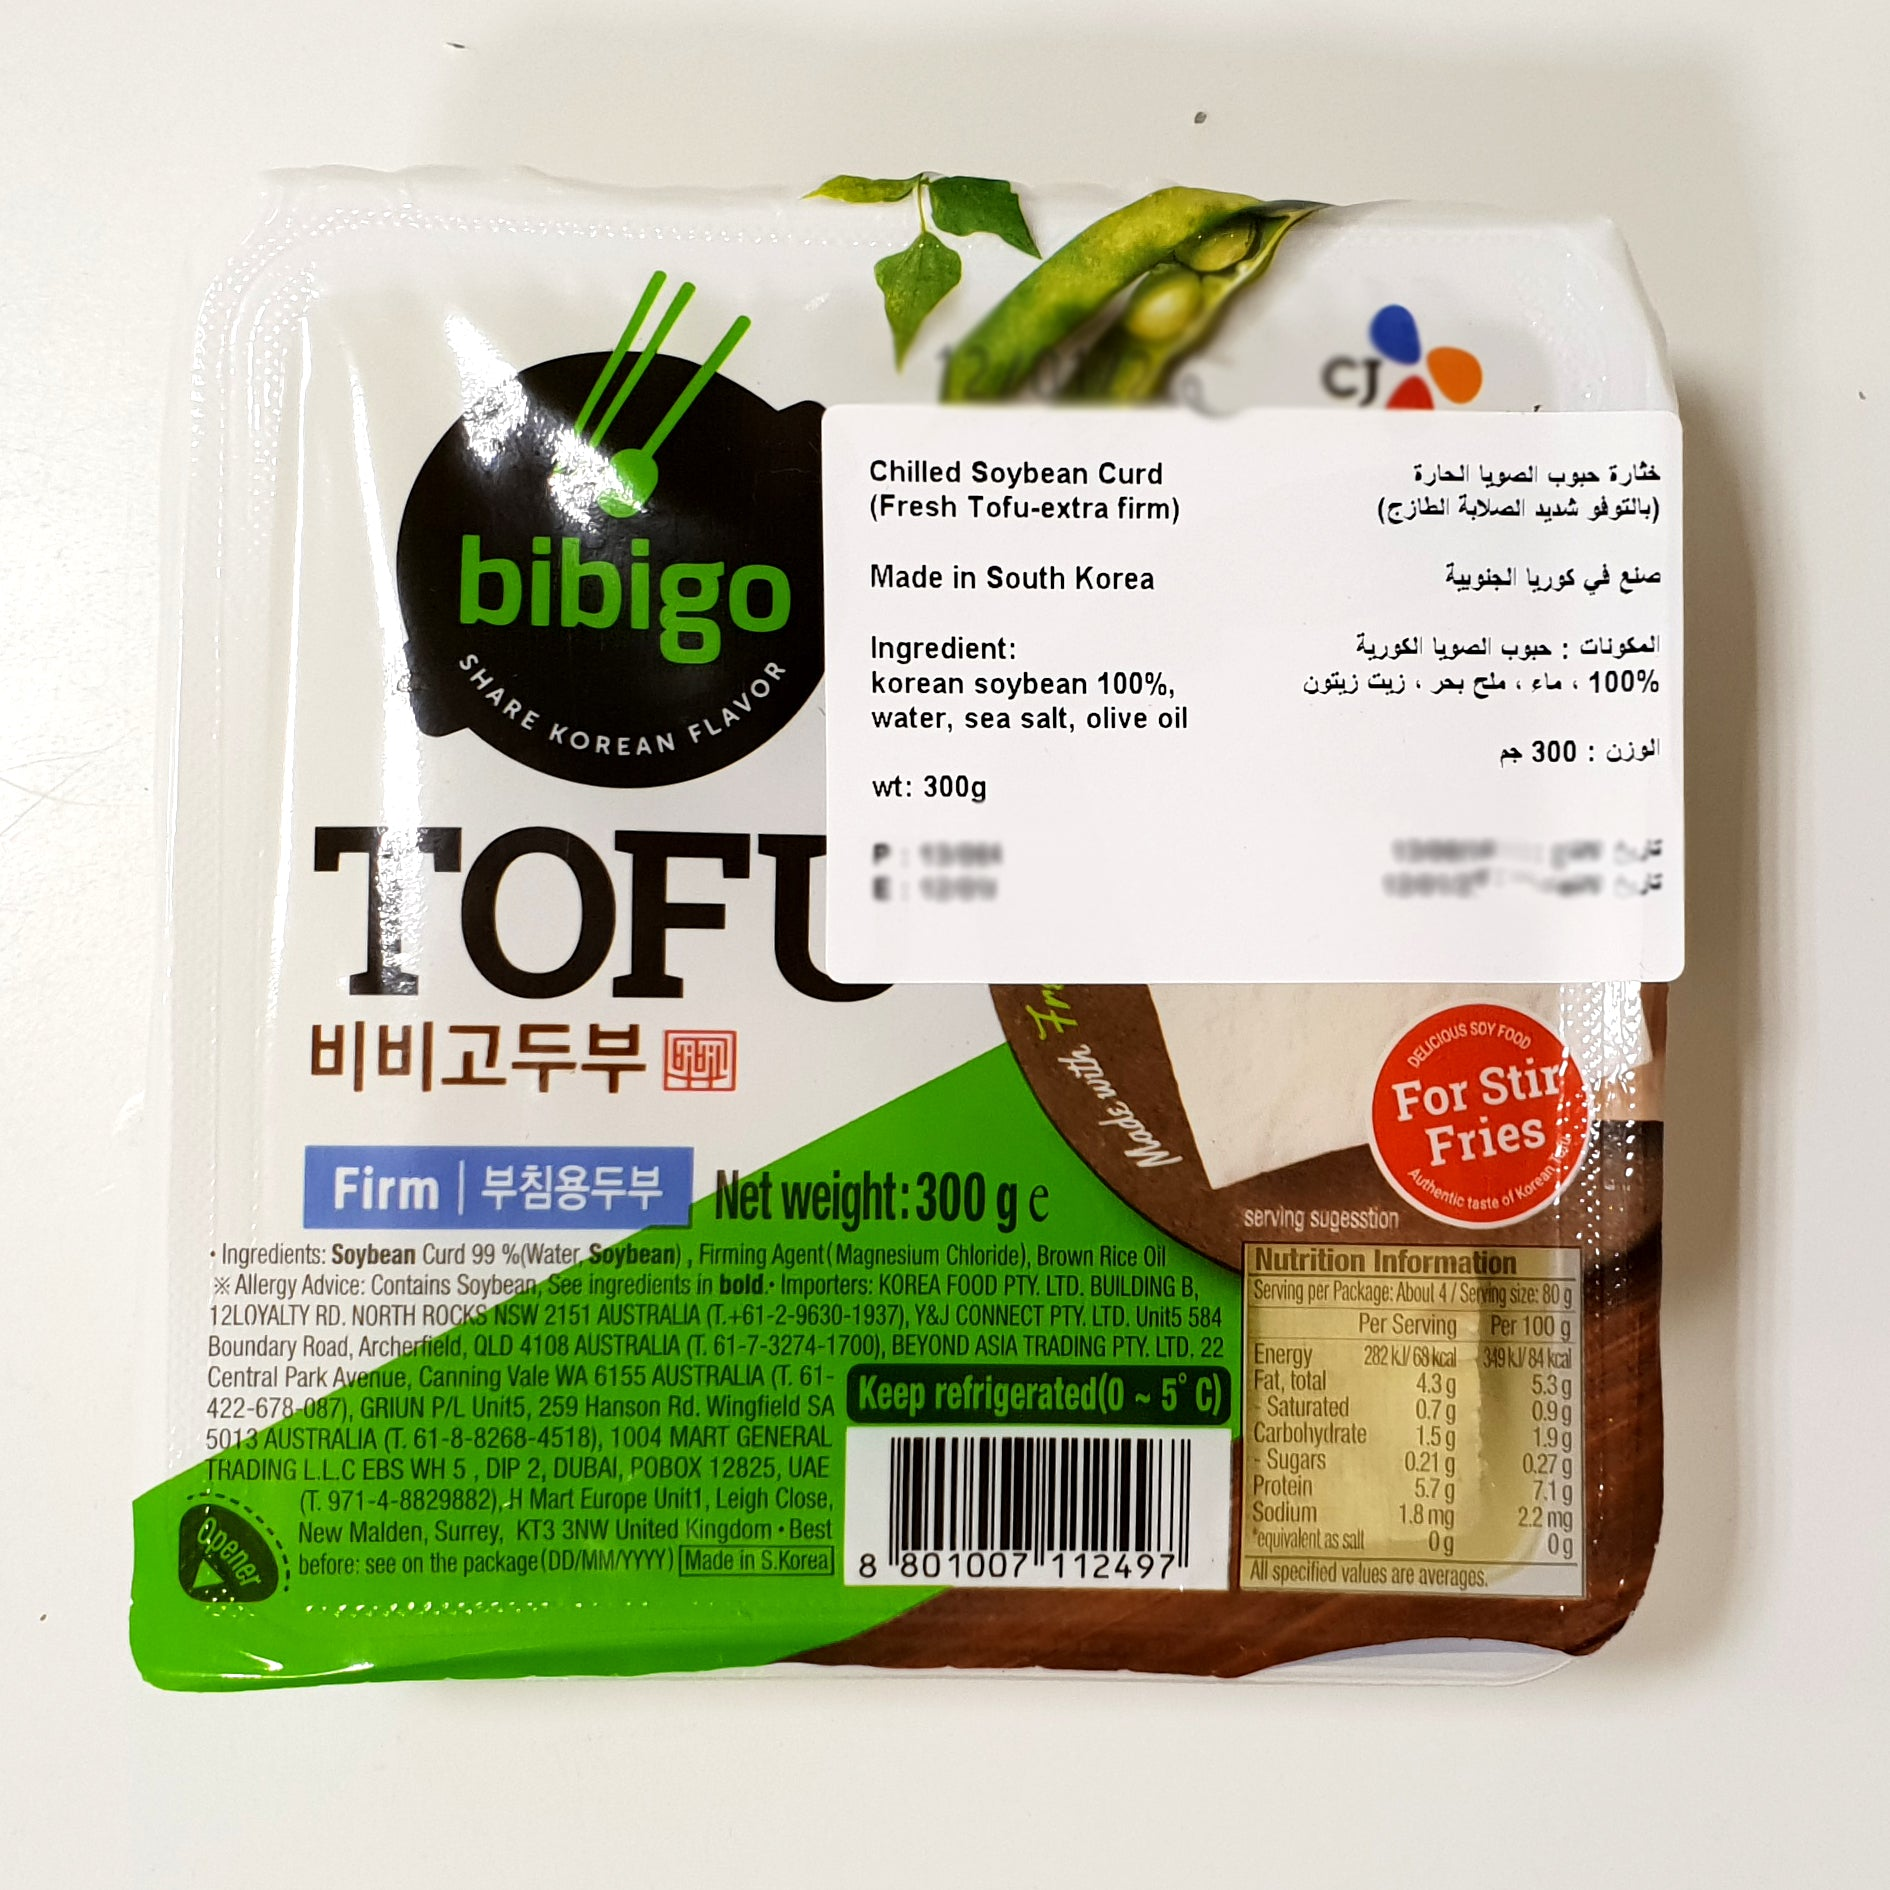 Cj Bibigo Tasty soy tofu (for fried dish)